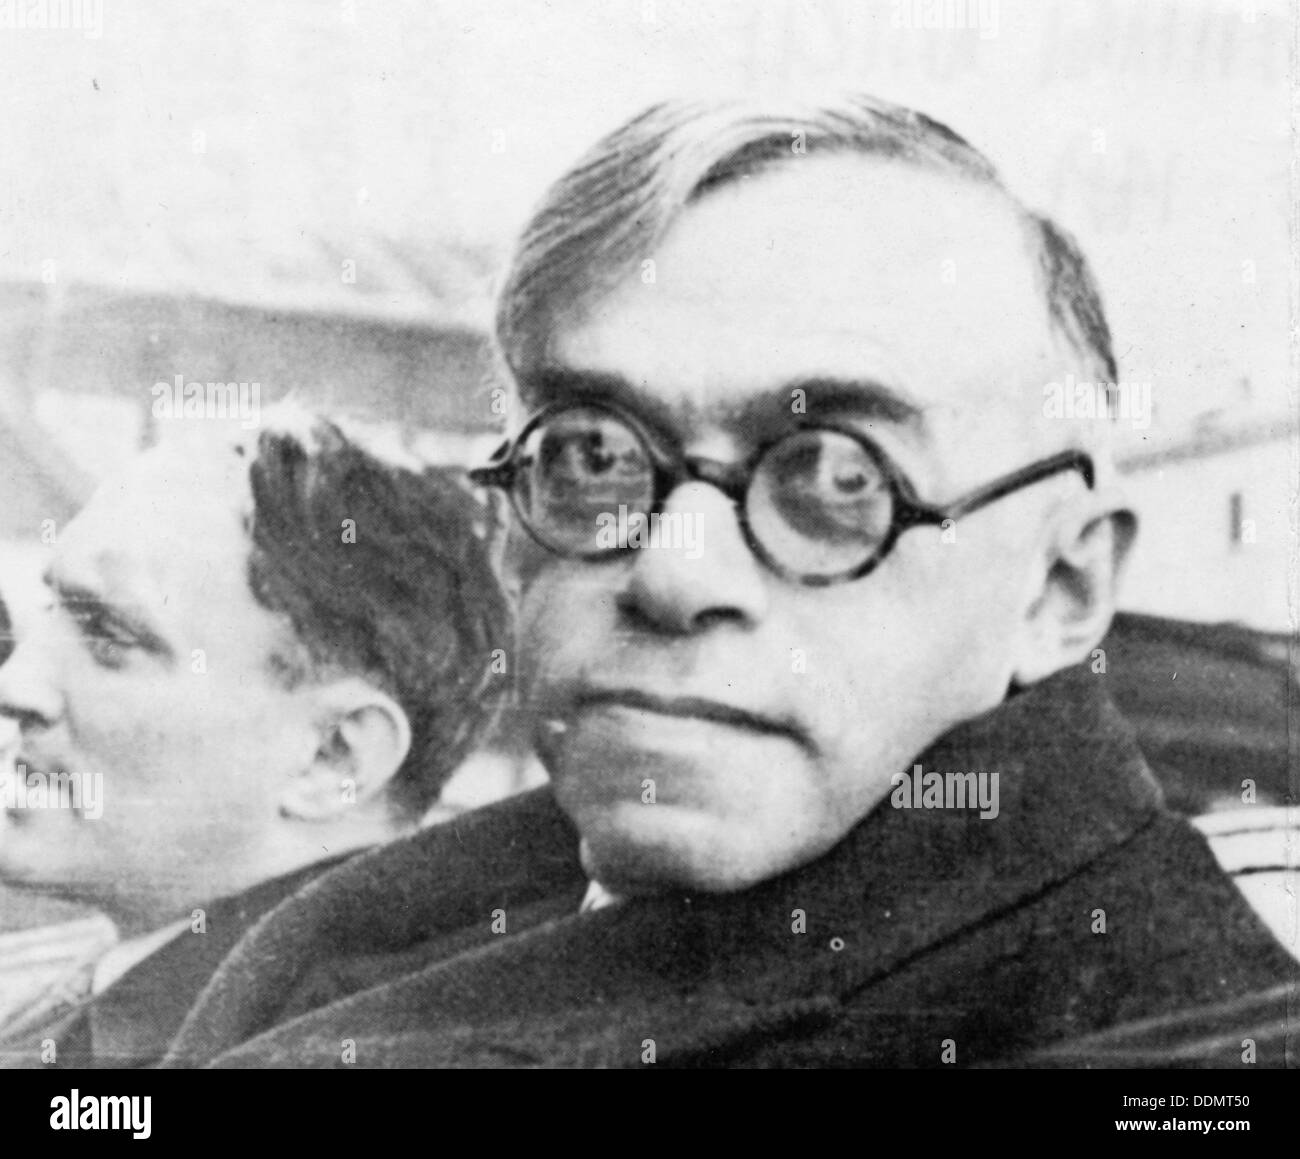 Vladimir Jabotinsky (1880-1940), Founder of revisionist Zionism. - Stock Image